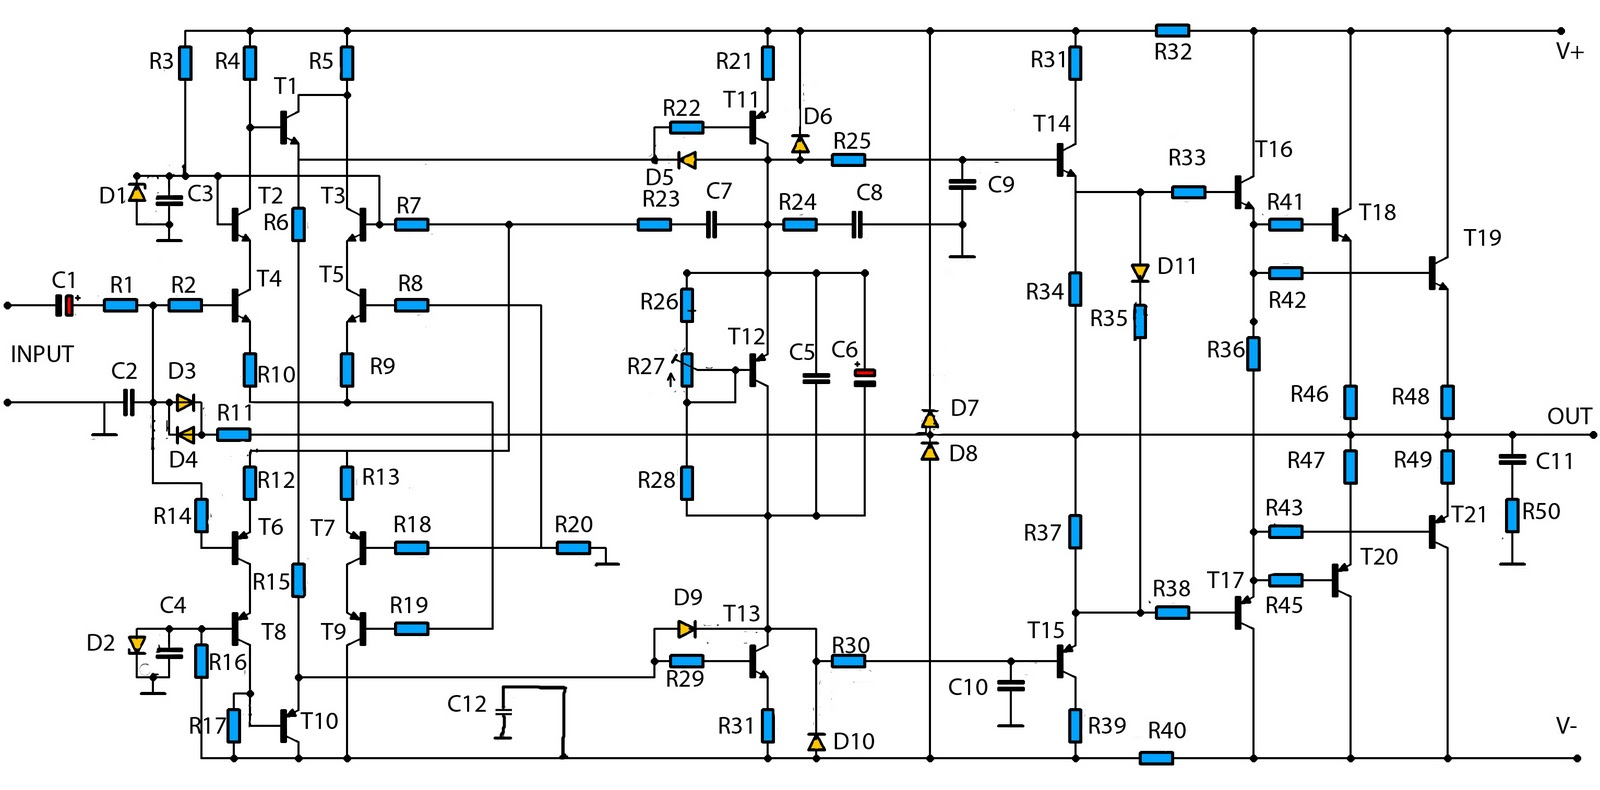 September 2013 ~Circuit diagram